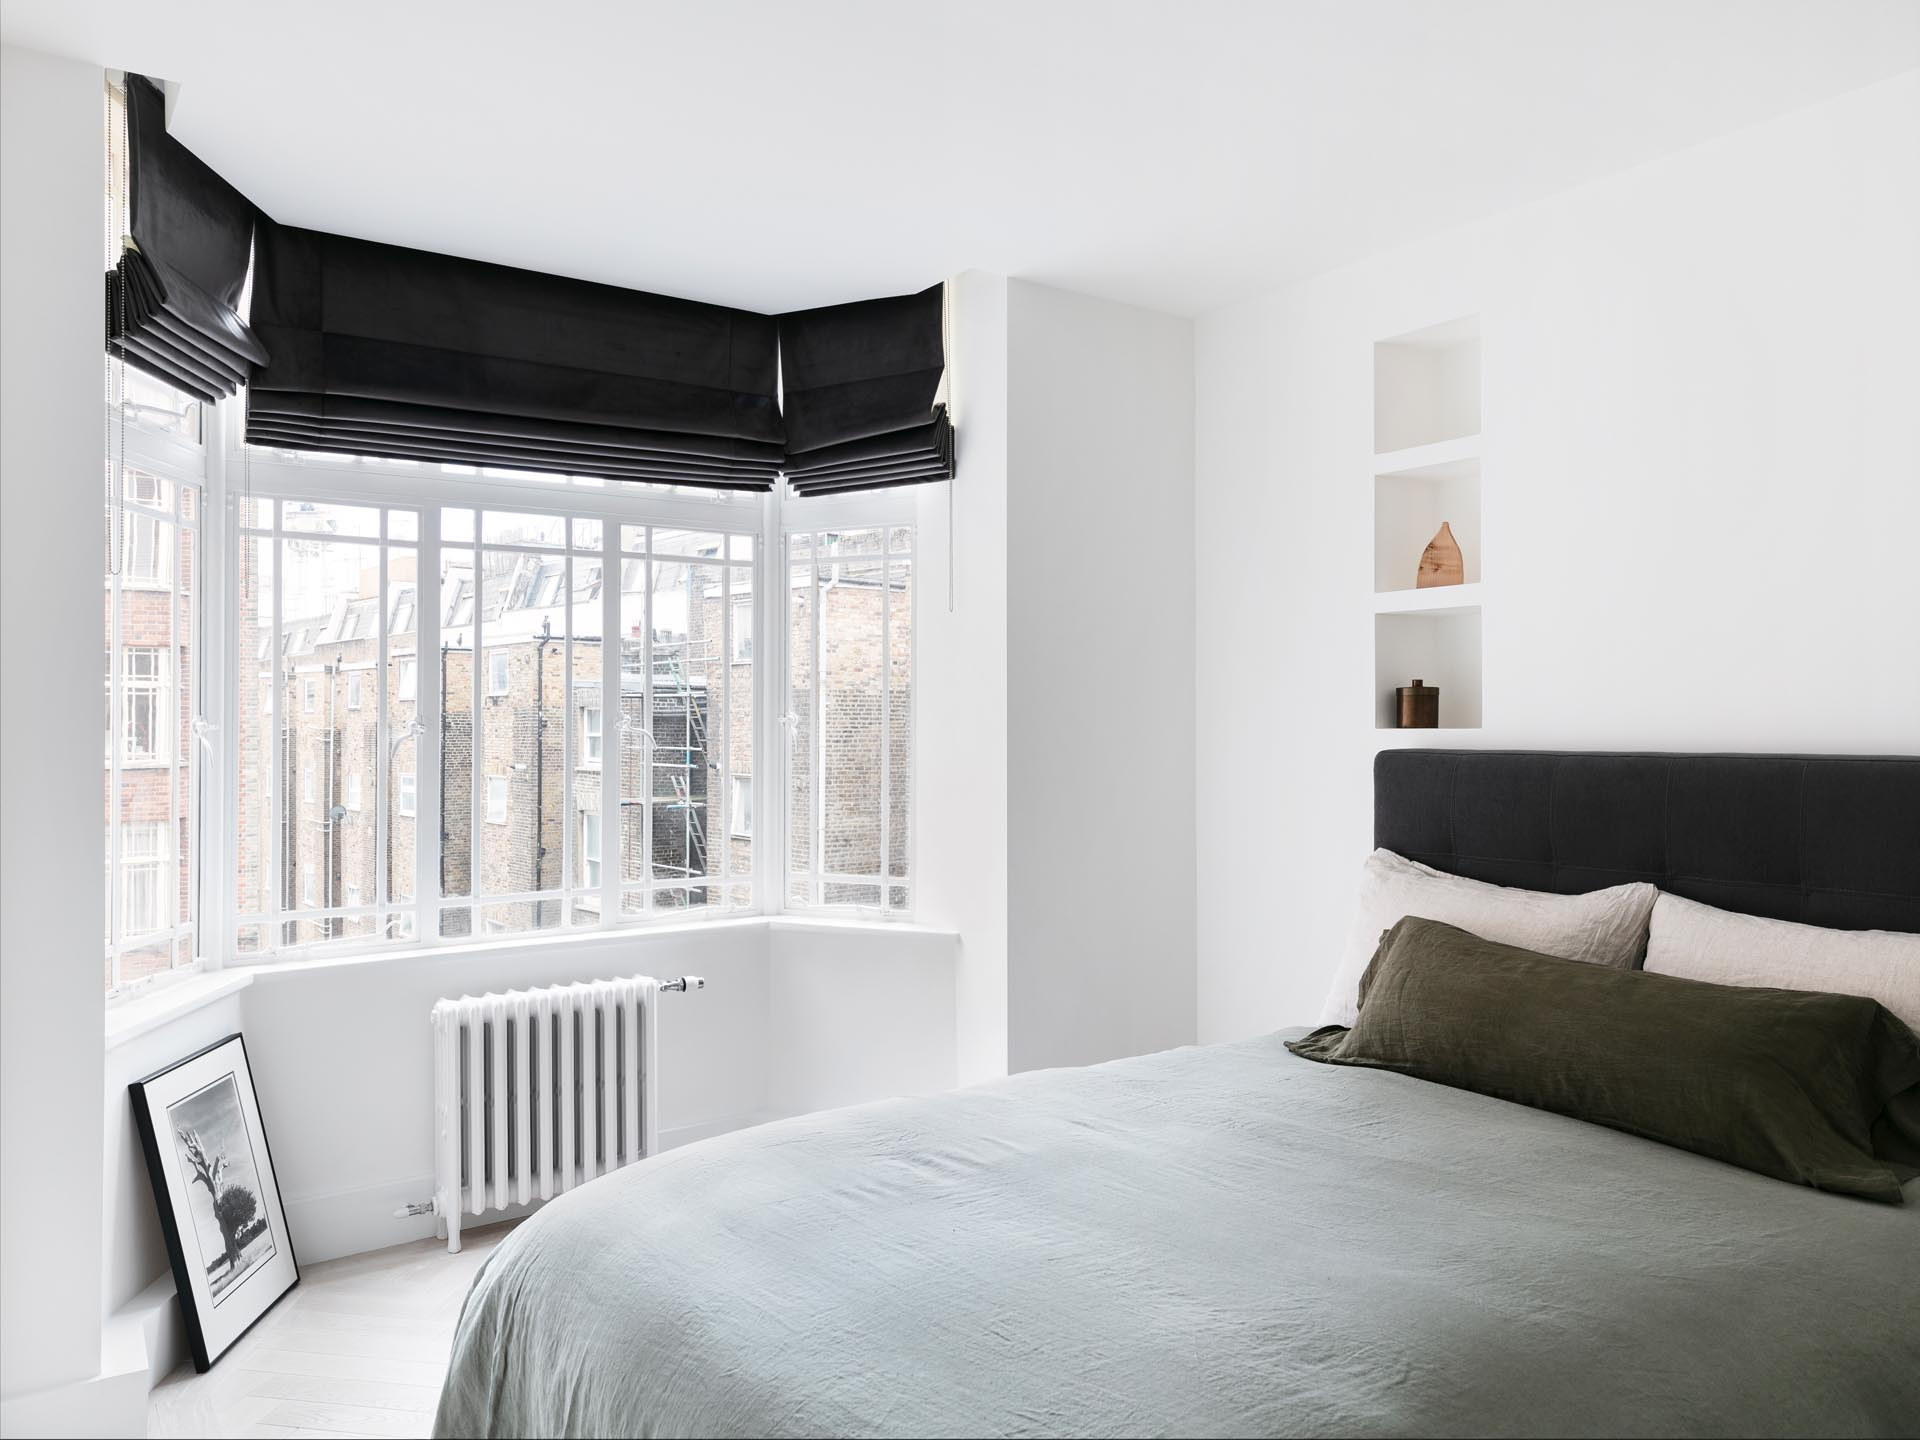 In this remodeled bedroom, the designers opened-up hidden wall niches and lowered the ceilings to hide curtain tracks.